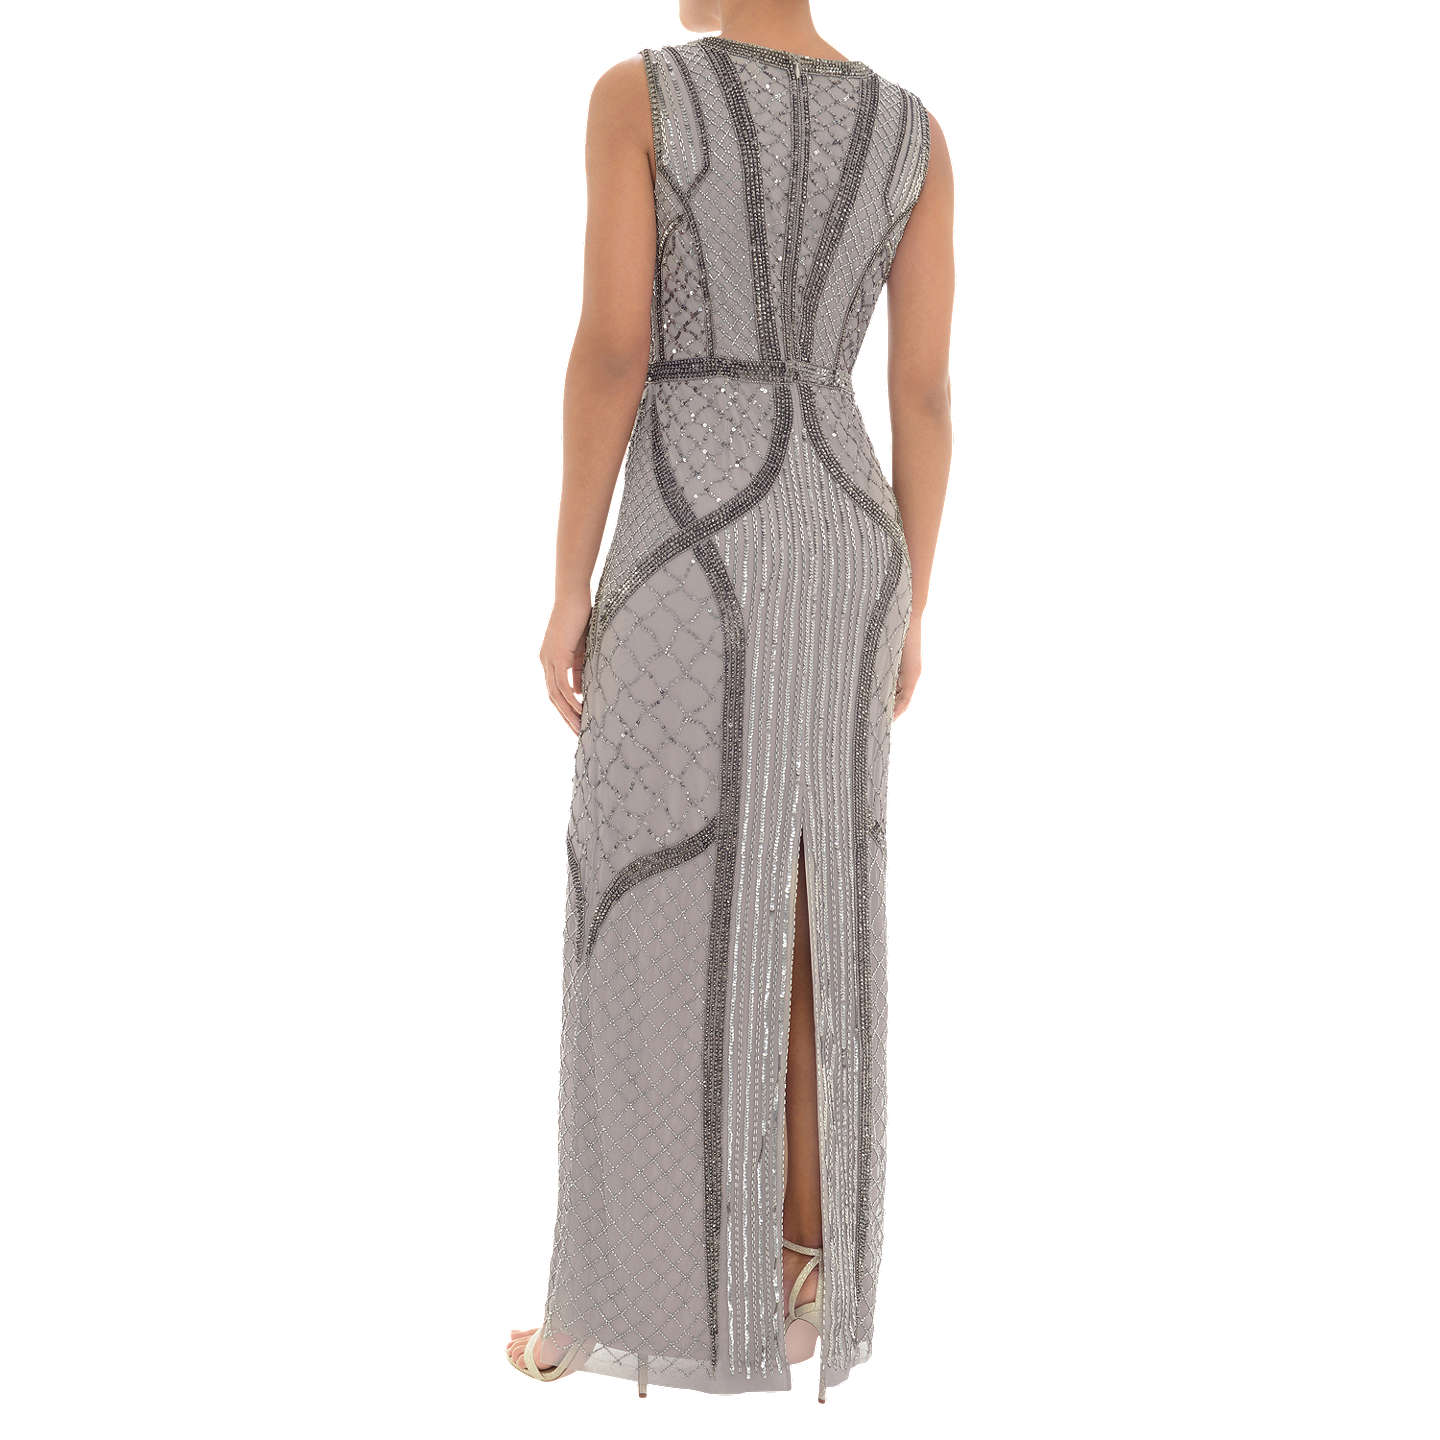 BuyAdrianna Papell Beaded Column Dress, Platinum, 8 Online at johnlewis.com